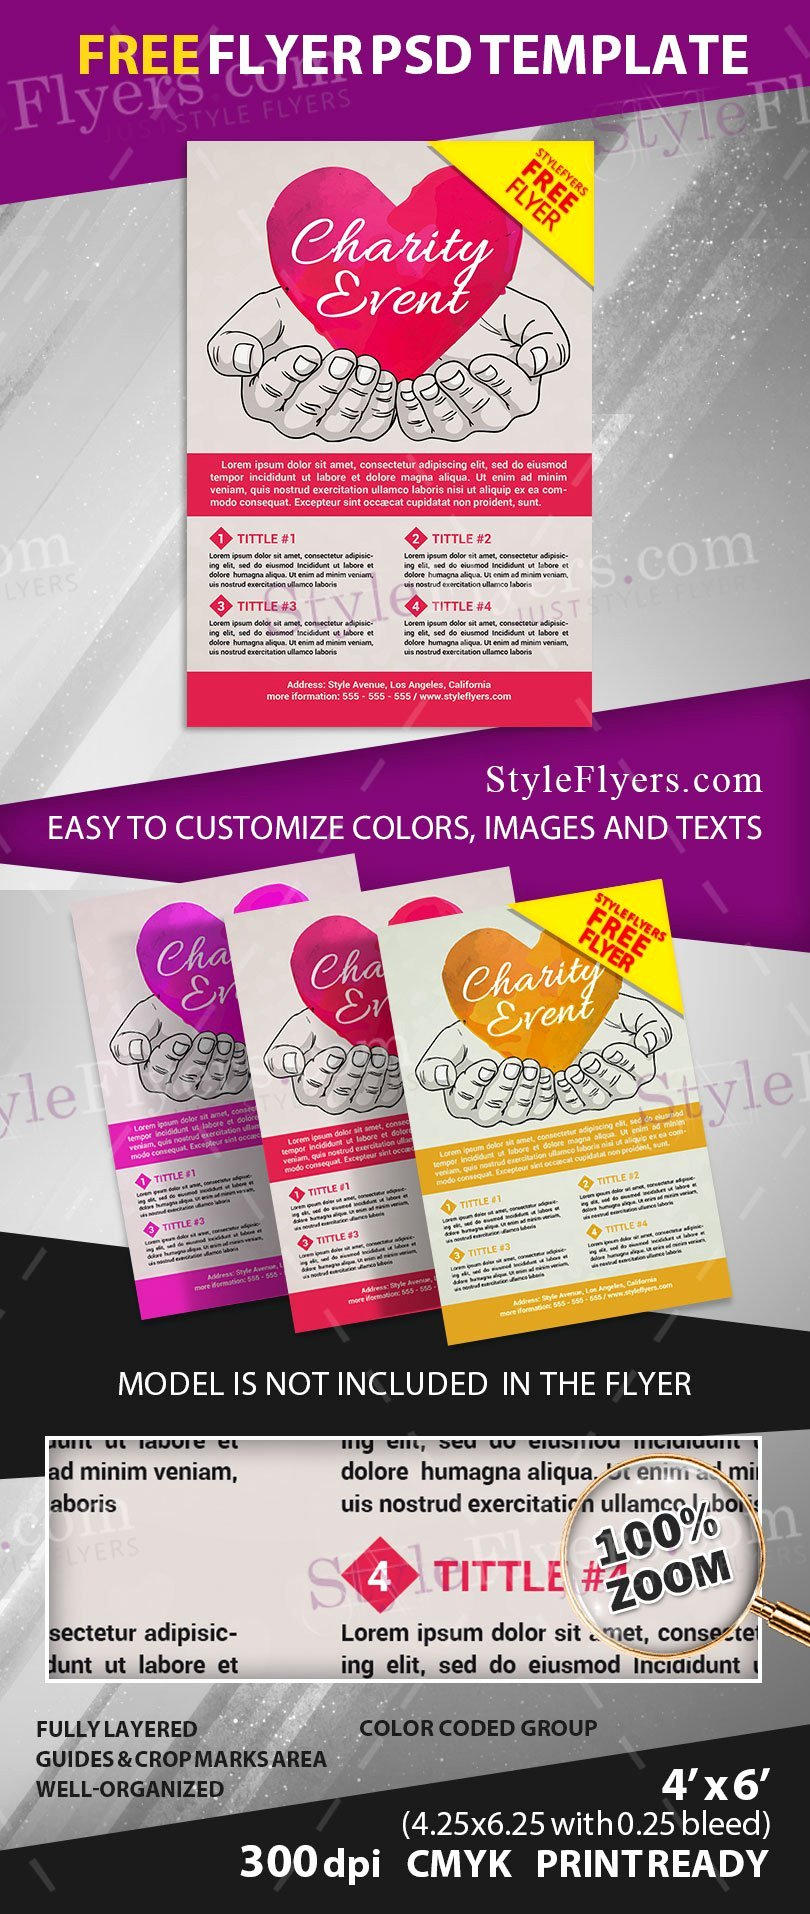 Charity event Free Psd Flyer Template Free Download